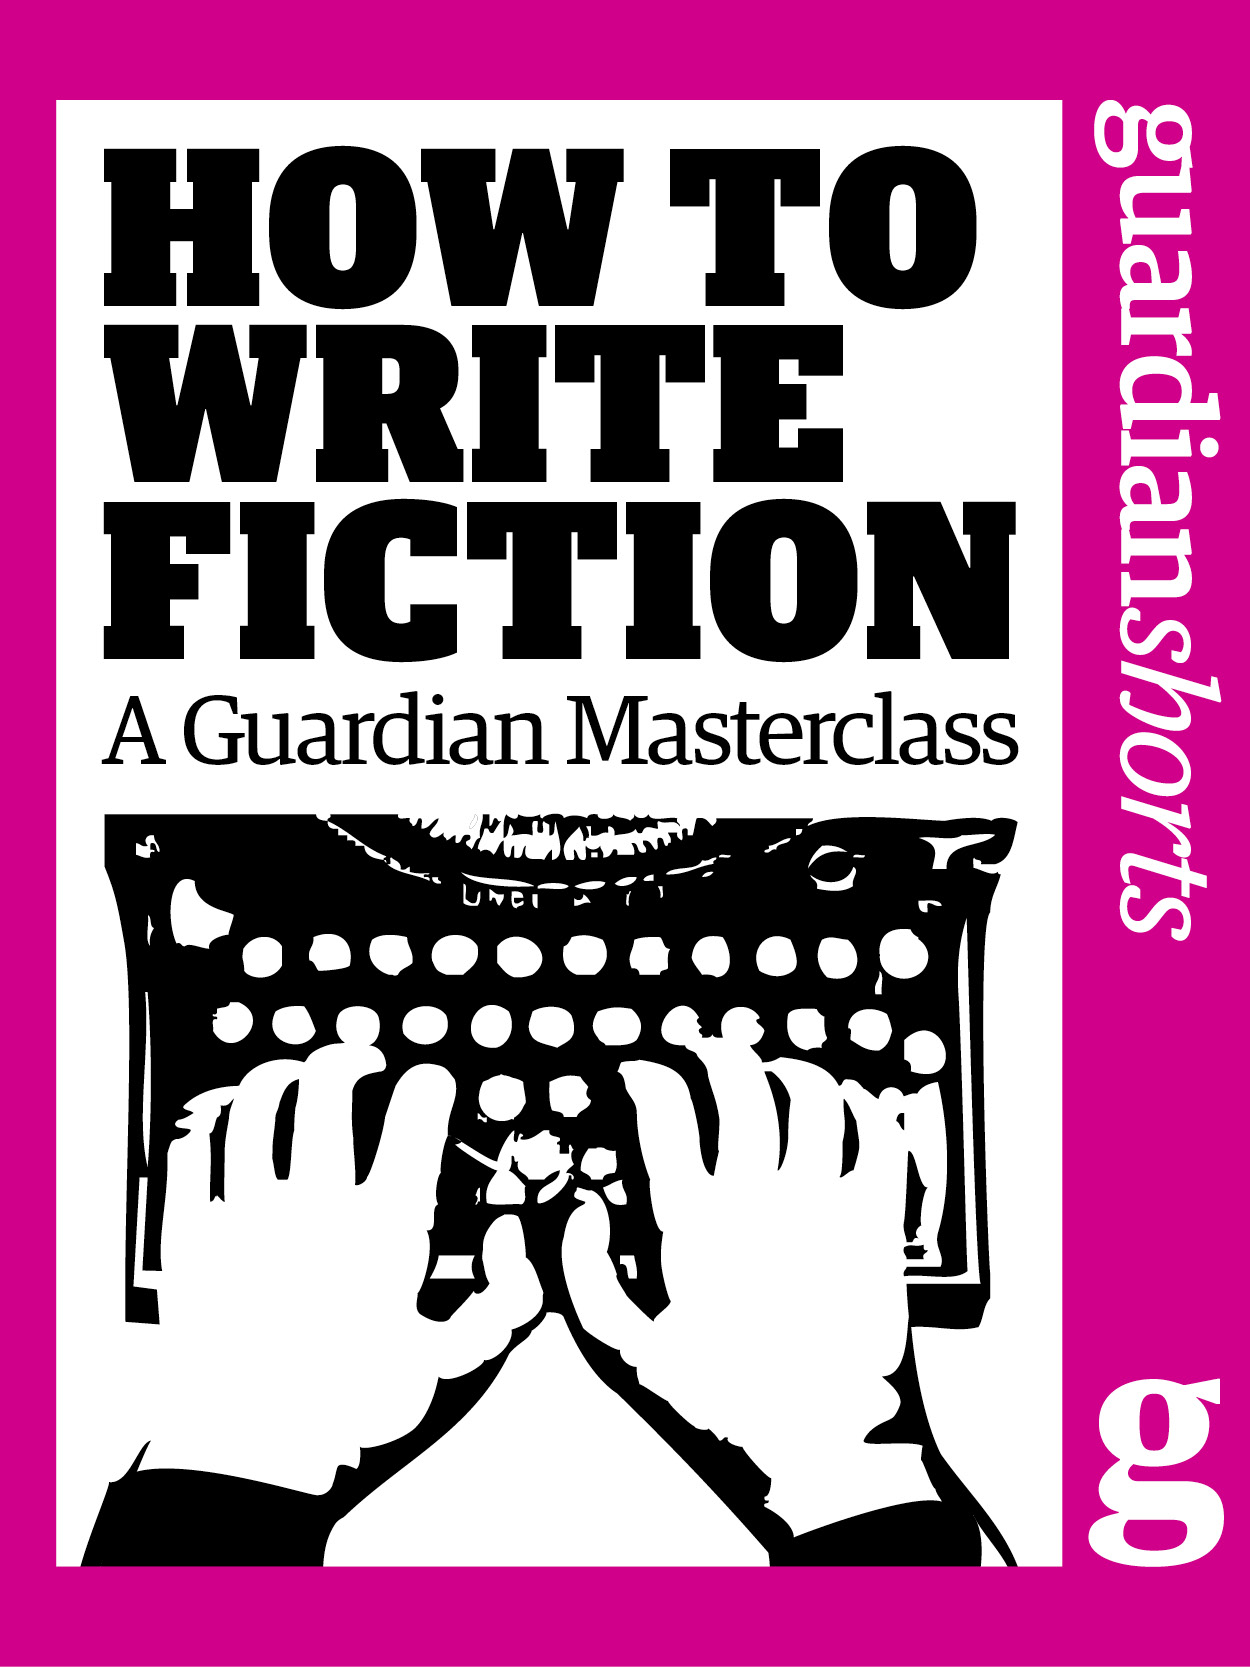 How to Write Fiction A Guardian Masterclass